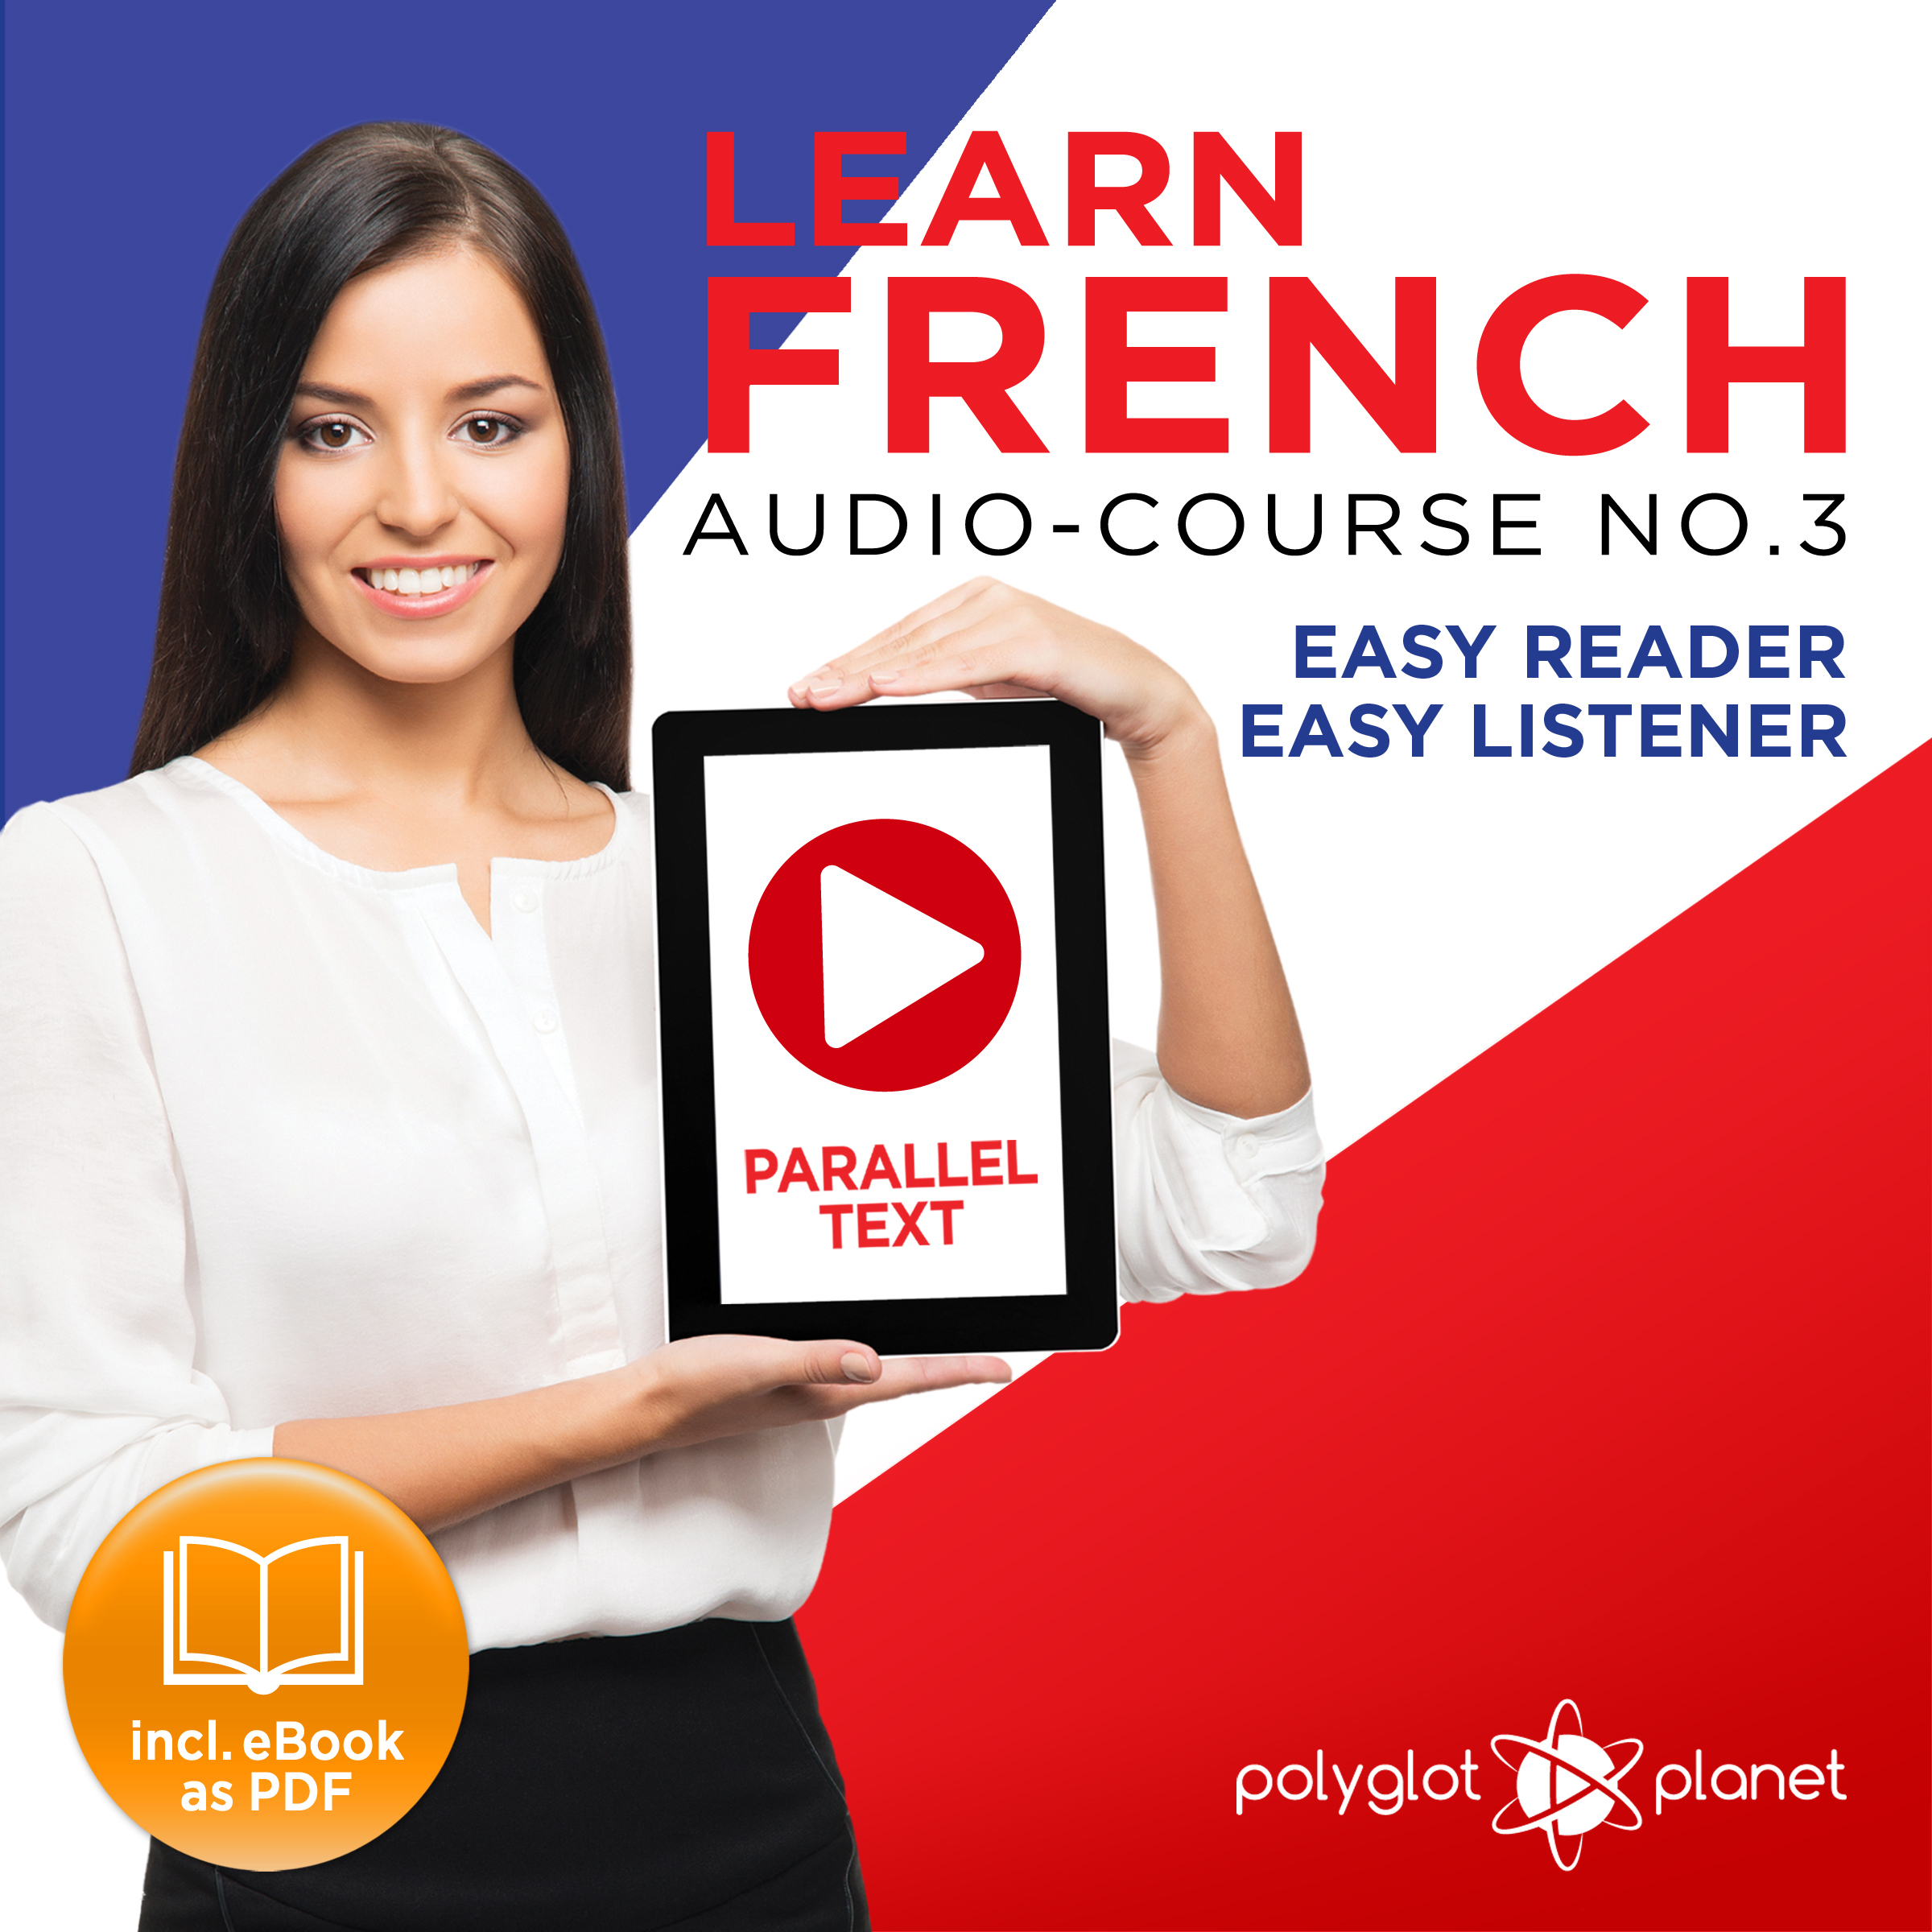 Printable Learn French Easy Reader - Easy Listener - Parallel Text Audio Course No. 3 - The French Easy Reader - Easy Audio Learning Course Audiobook Cover Art